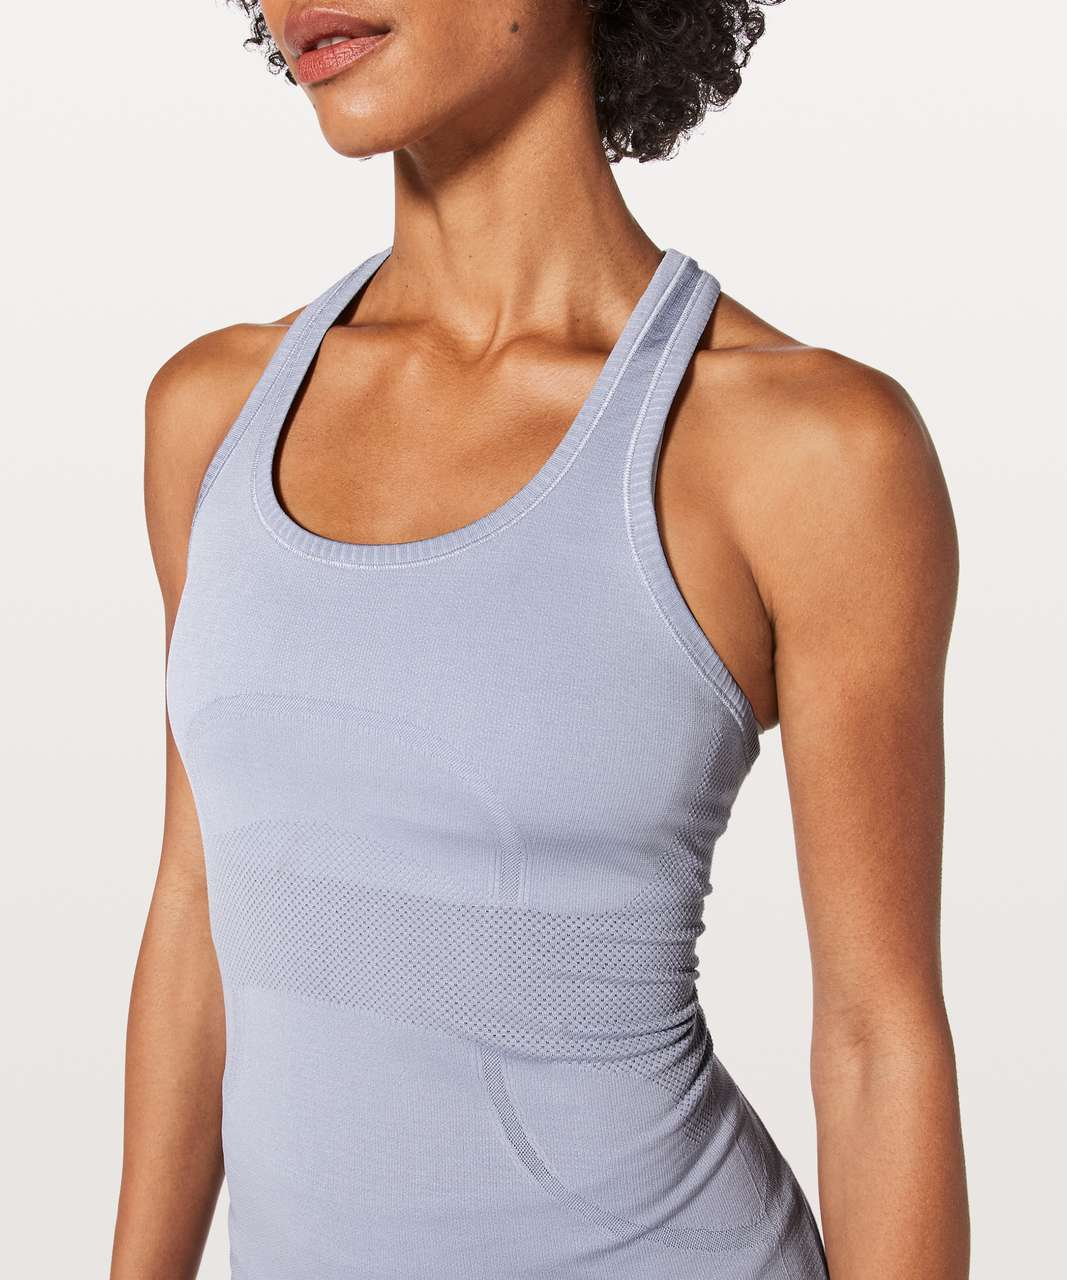 Lululemon Swiftly Tech Racerback - Berry Mist / Berry Mist